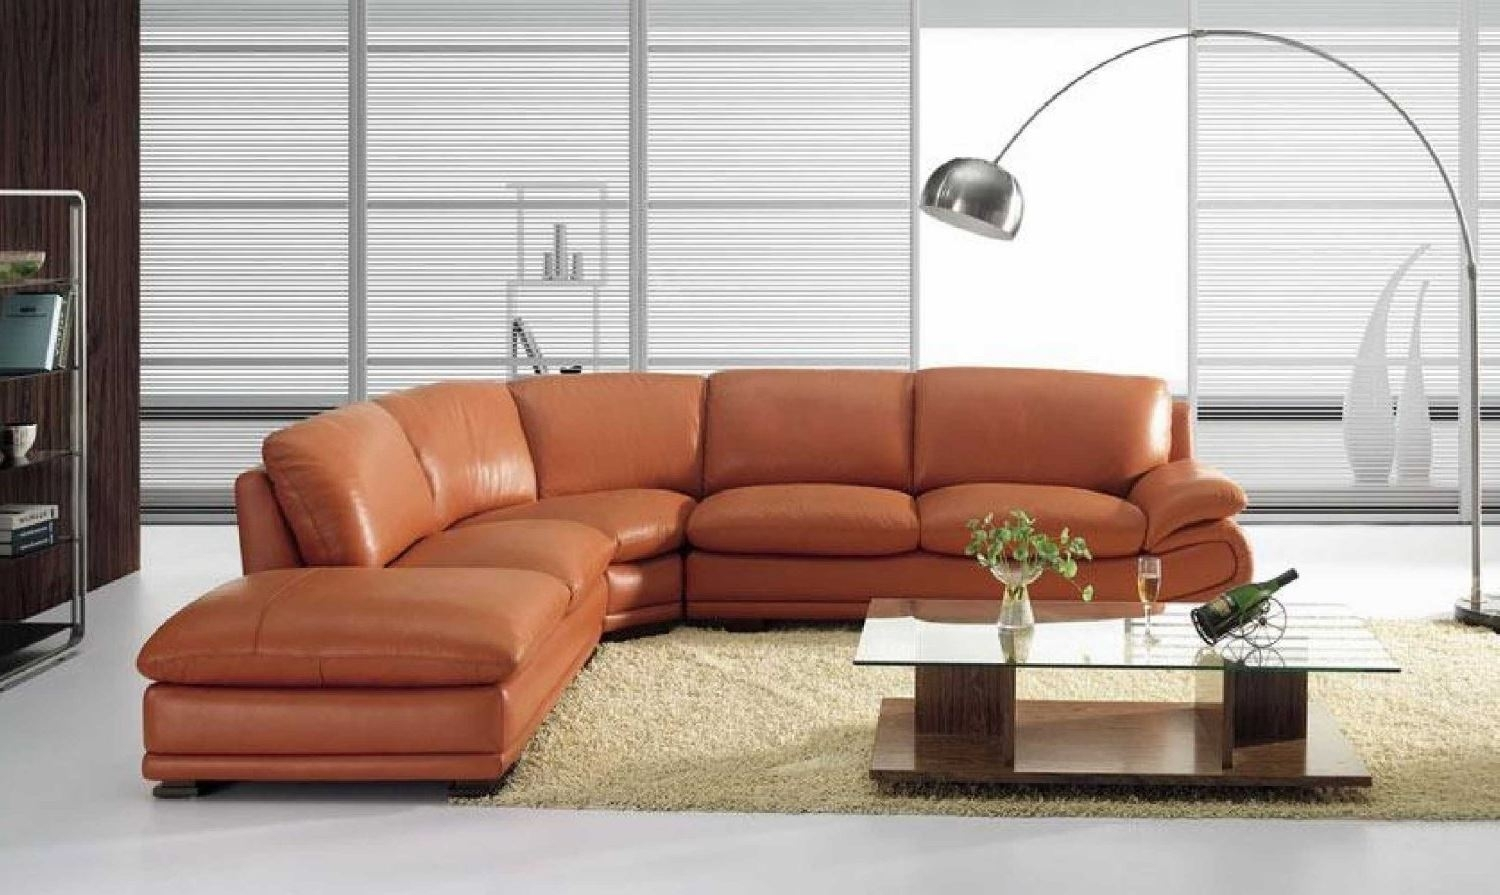 Vig Furniture Bo 3920 Leather Modern Camel Sectional Sofa For Camel Sectional Sofas (View 5 of 10)